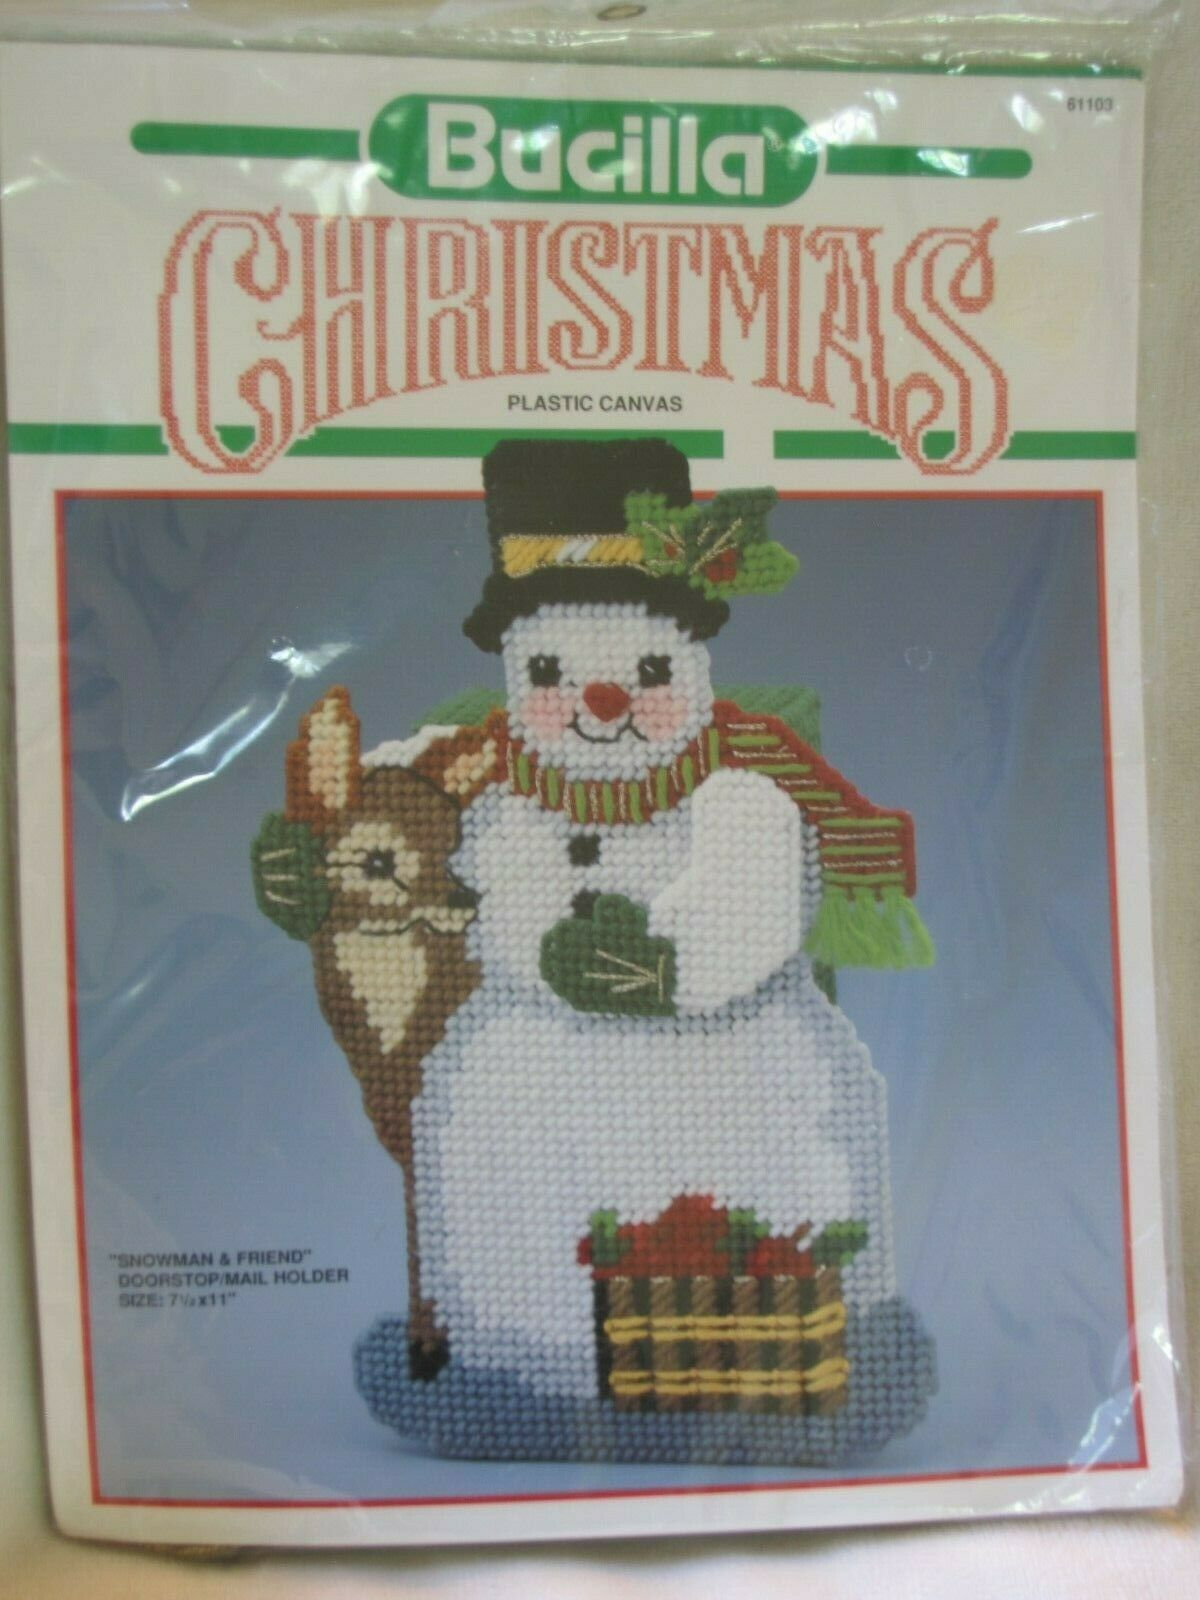 Primary image for Bucilla Christmas Plastic Canvas Snowman and Friend Doorstop/Mail Holder 61103